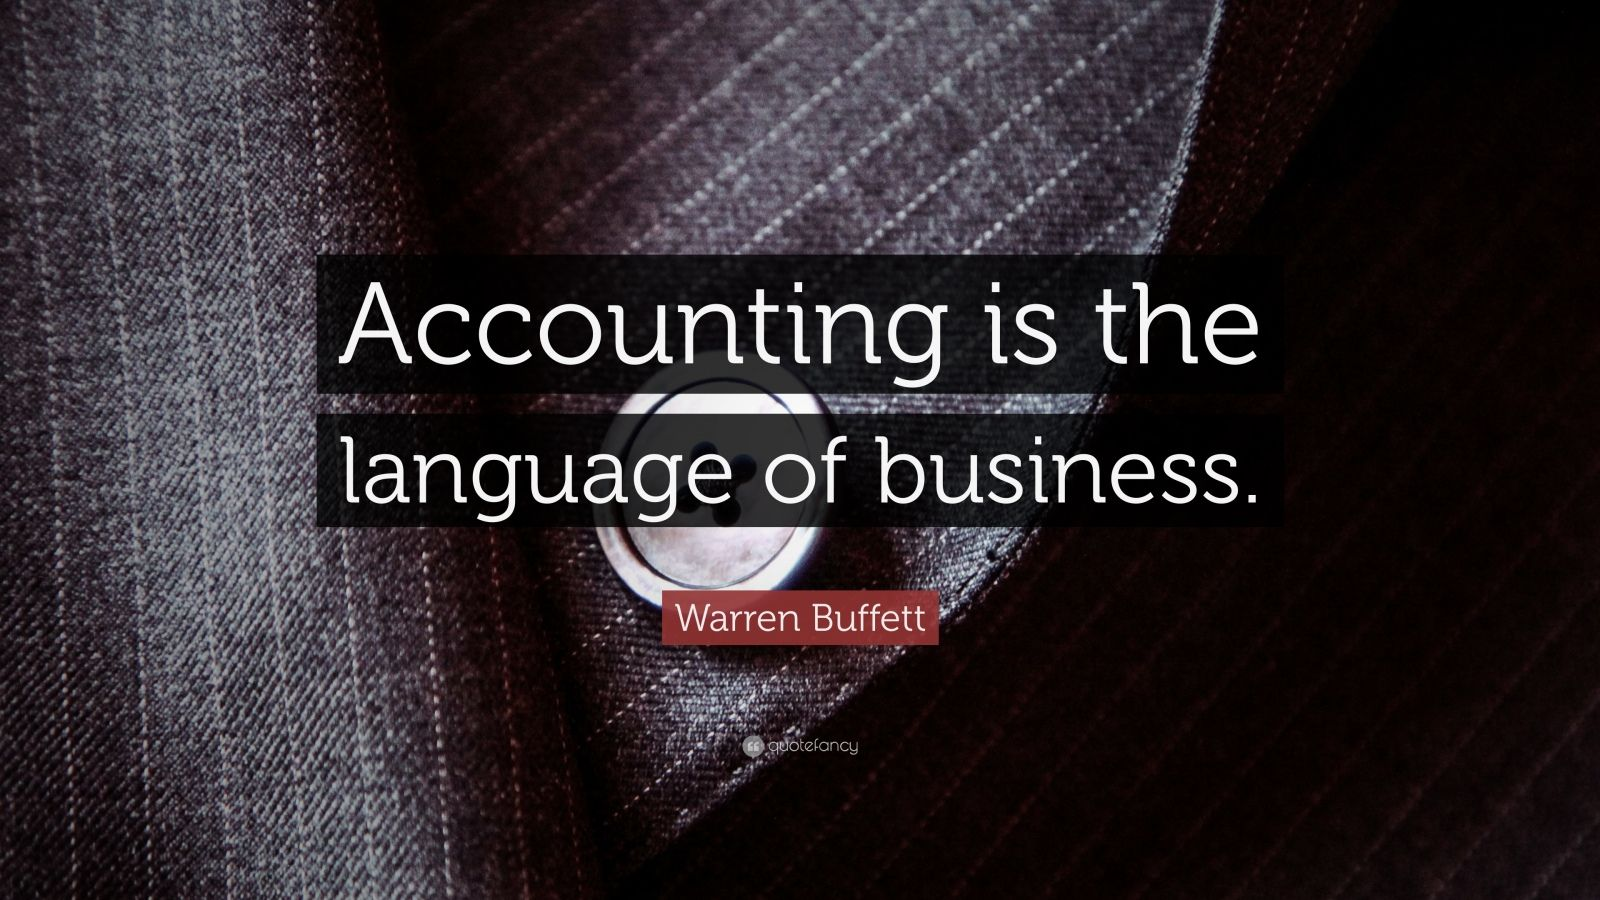 Life Success Quotes Hd Wallpapers Warren Buffett Quote Accounting Is The Language Of